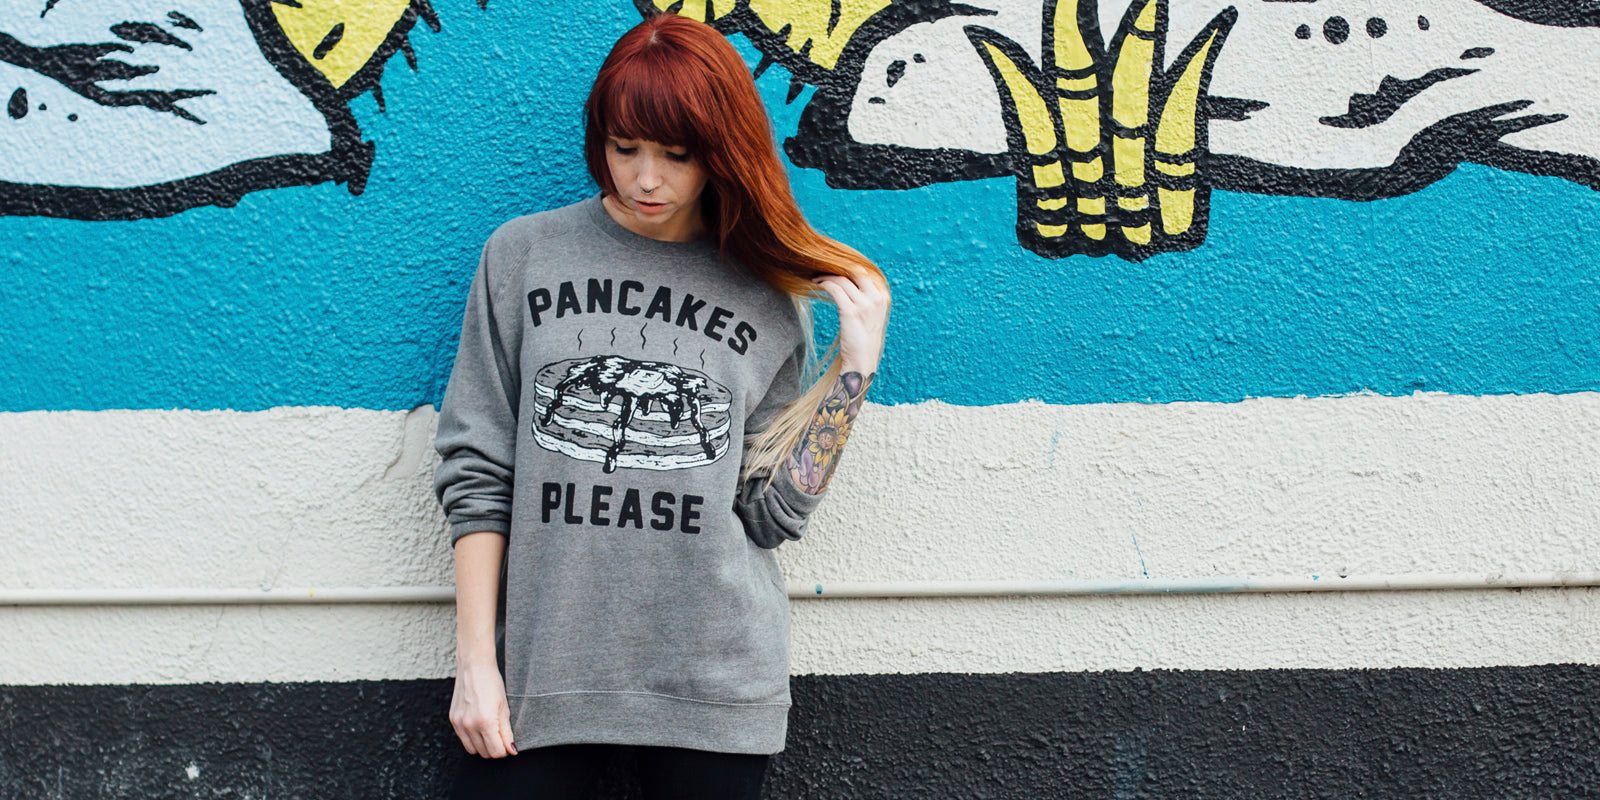 Pancakes Please Women's Vintage Raglan Crewneck Sweatshirt for Breakfast Brunch Foodie Food Lovers